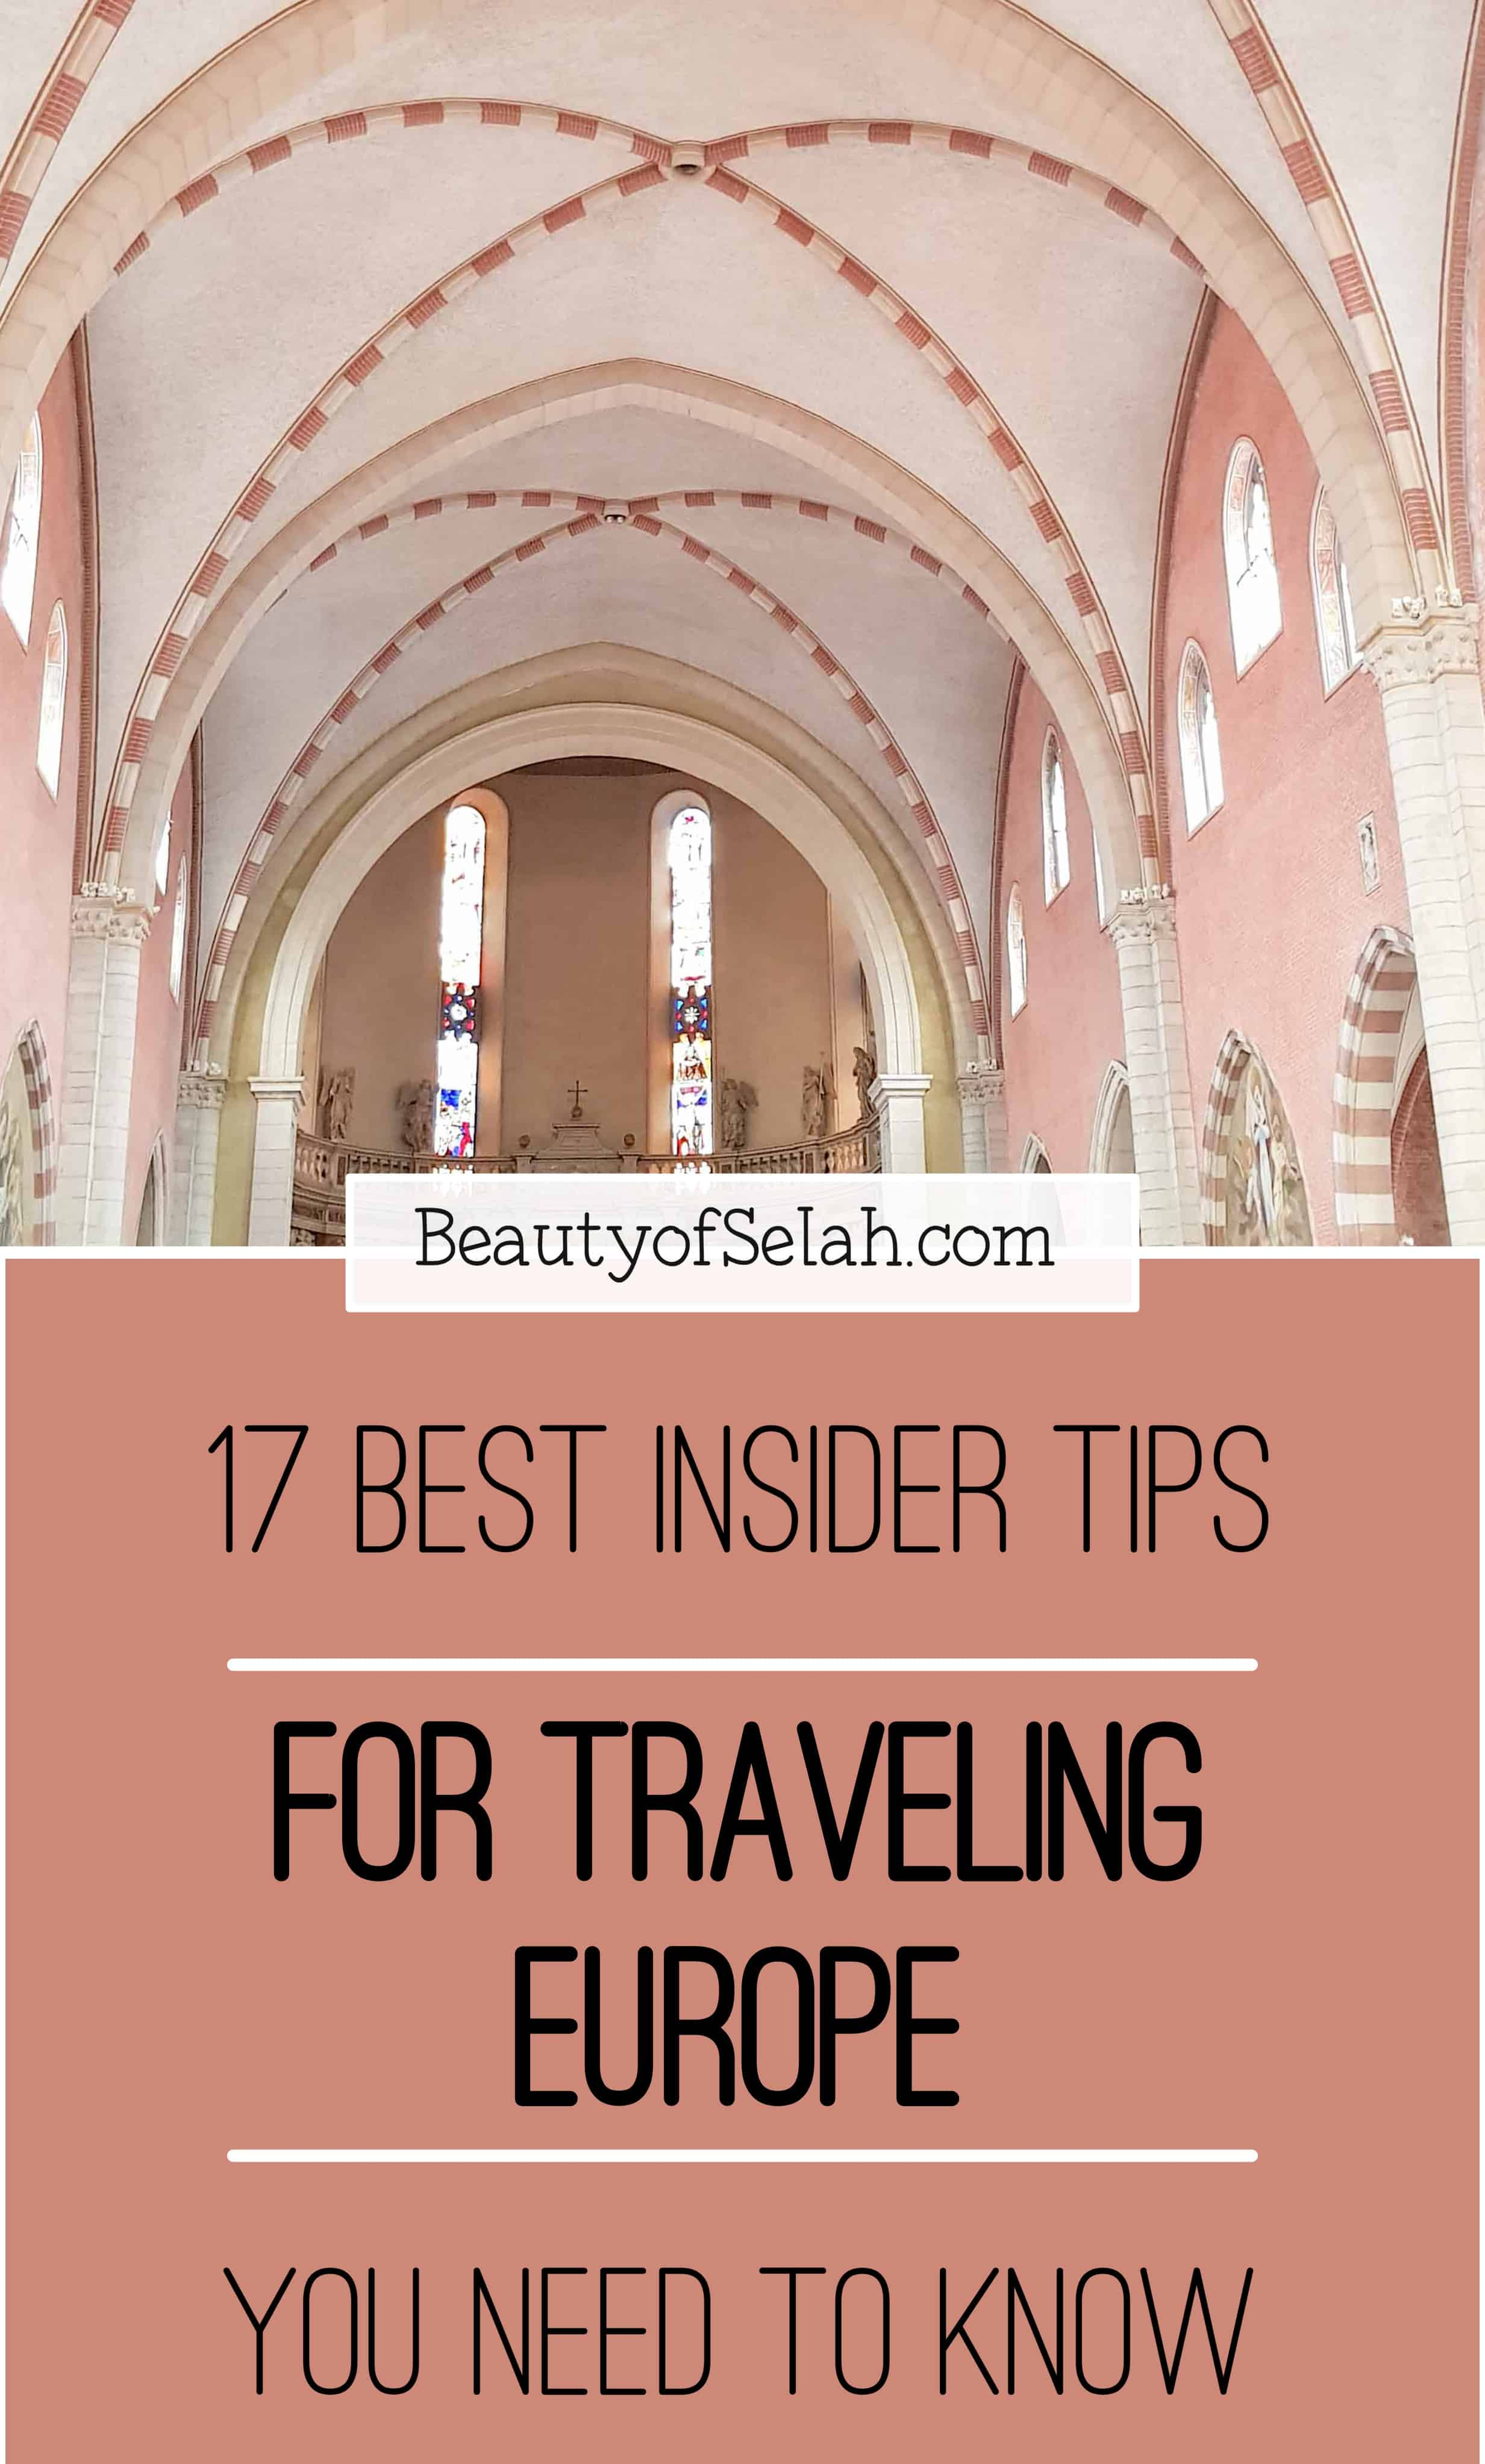 17 best insider tips for traveling europe you need